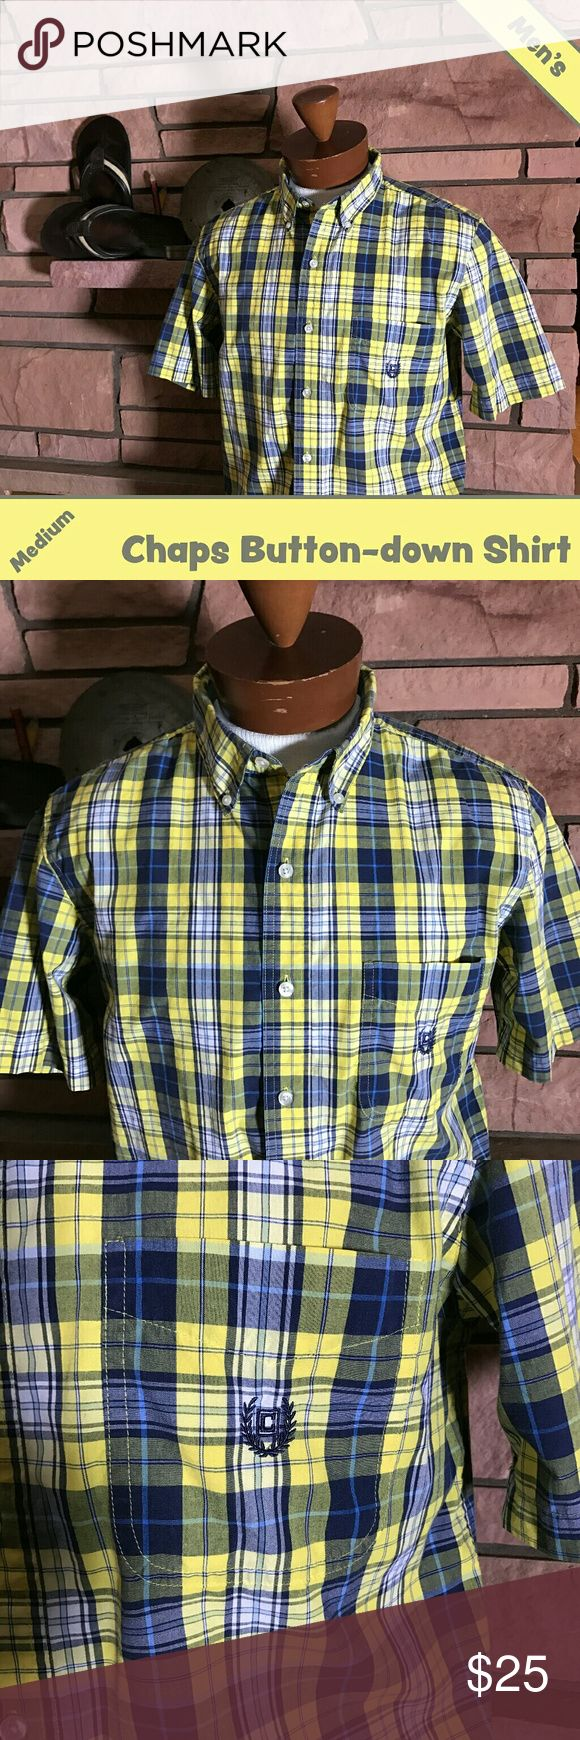 🍇 Men's Chaps Shirt This short sleeve button-down Chaps shirt will brighten up your warm weather wardrobe!  It is in EUC.  From a smoke-free and happy-to-bundle closet.   No trades or transactions outside of Poshmark.  [T488] Chaps Shirts Casual Button Down Shirts